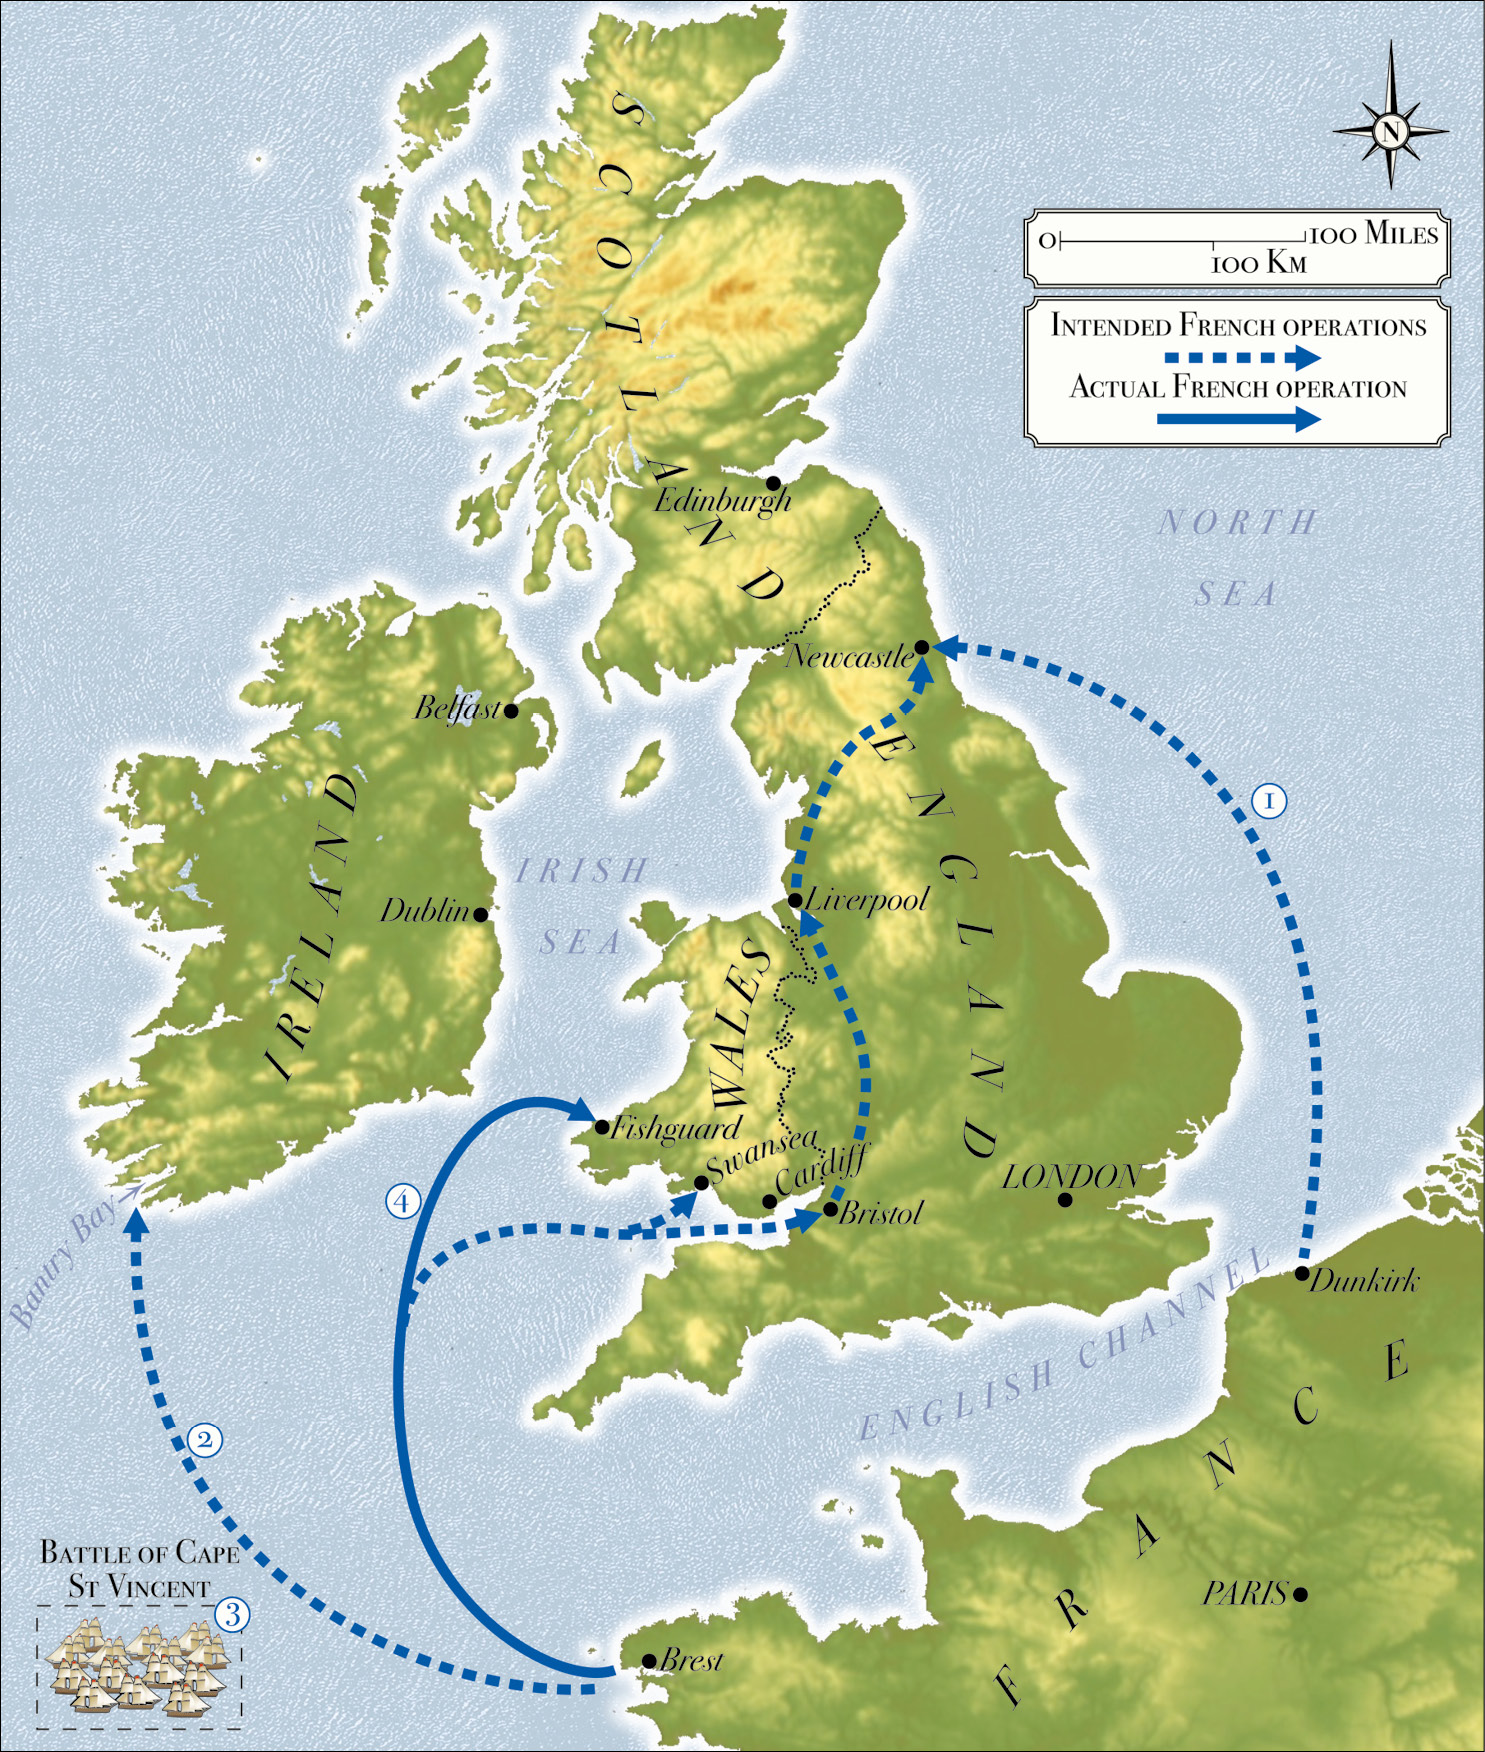 ABOVE Map of planned French operations against the British Isles in 1796-1797: (1) The abortive Newcastle landing (November 1796). (2) The abortive Bantry Bay landing (December 1796). (3) The defeat of the Spanish fleet at the Battle of Cape St Vincent (14 February 1797). (4) The diverted Fishguard expedition (February 1797).